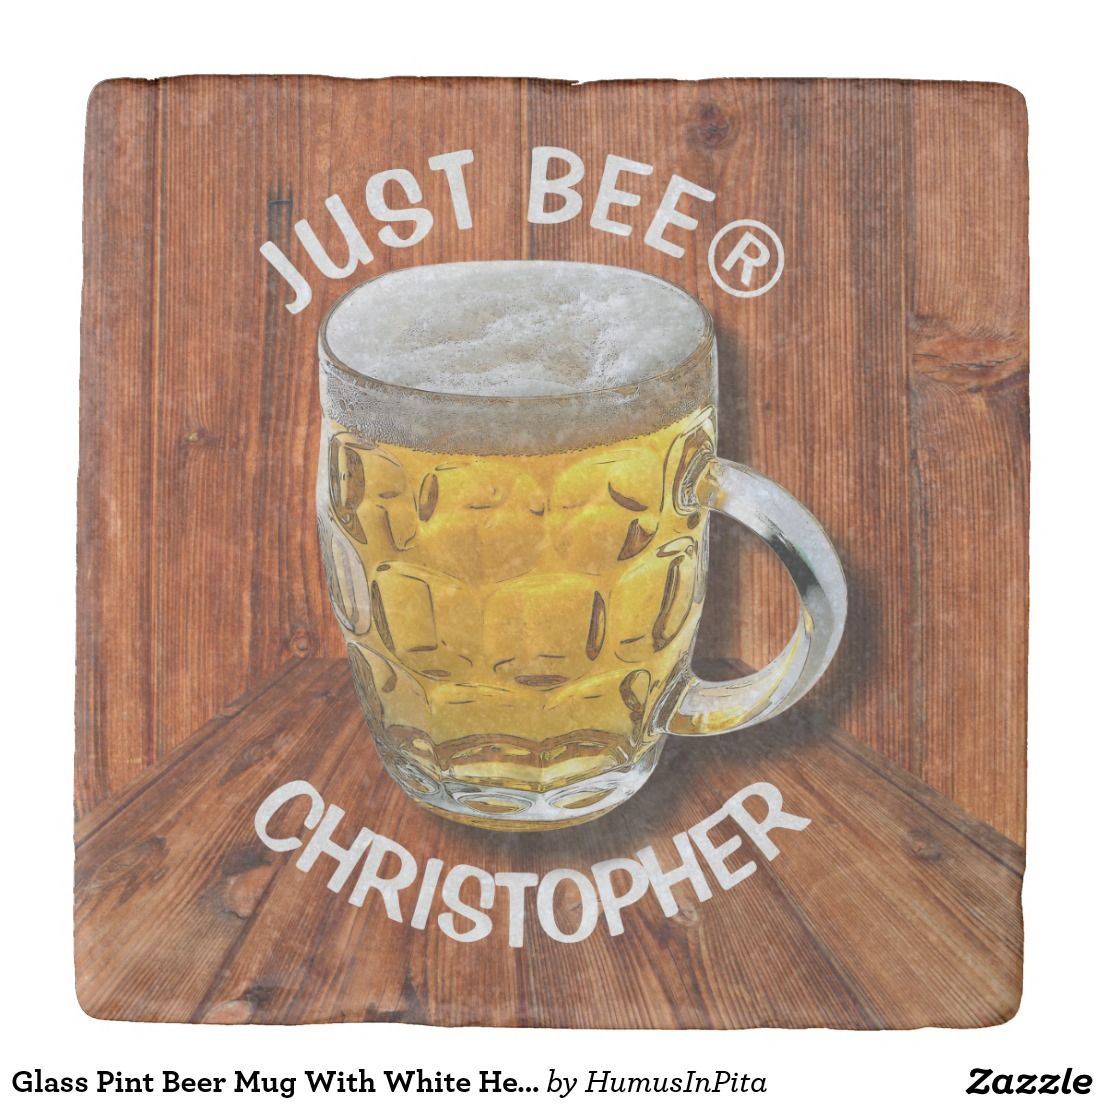 Glass Pint Beer Mug With White Head With Your Text Stone Coaster